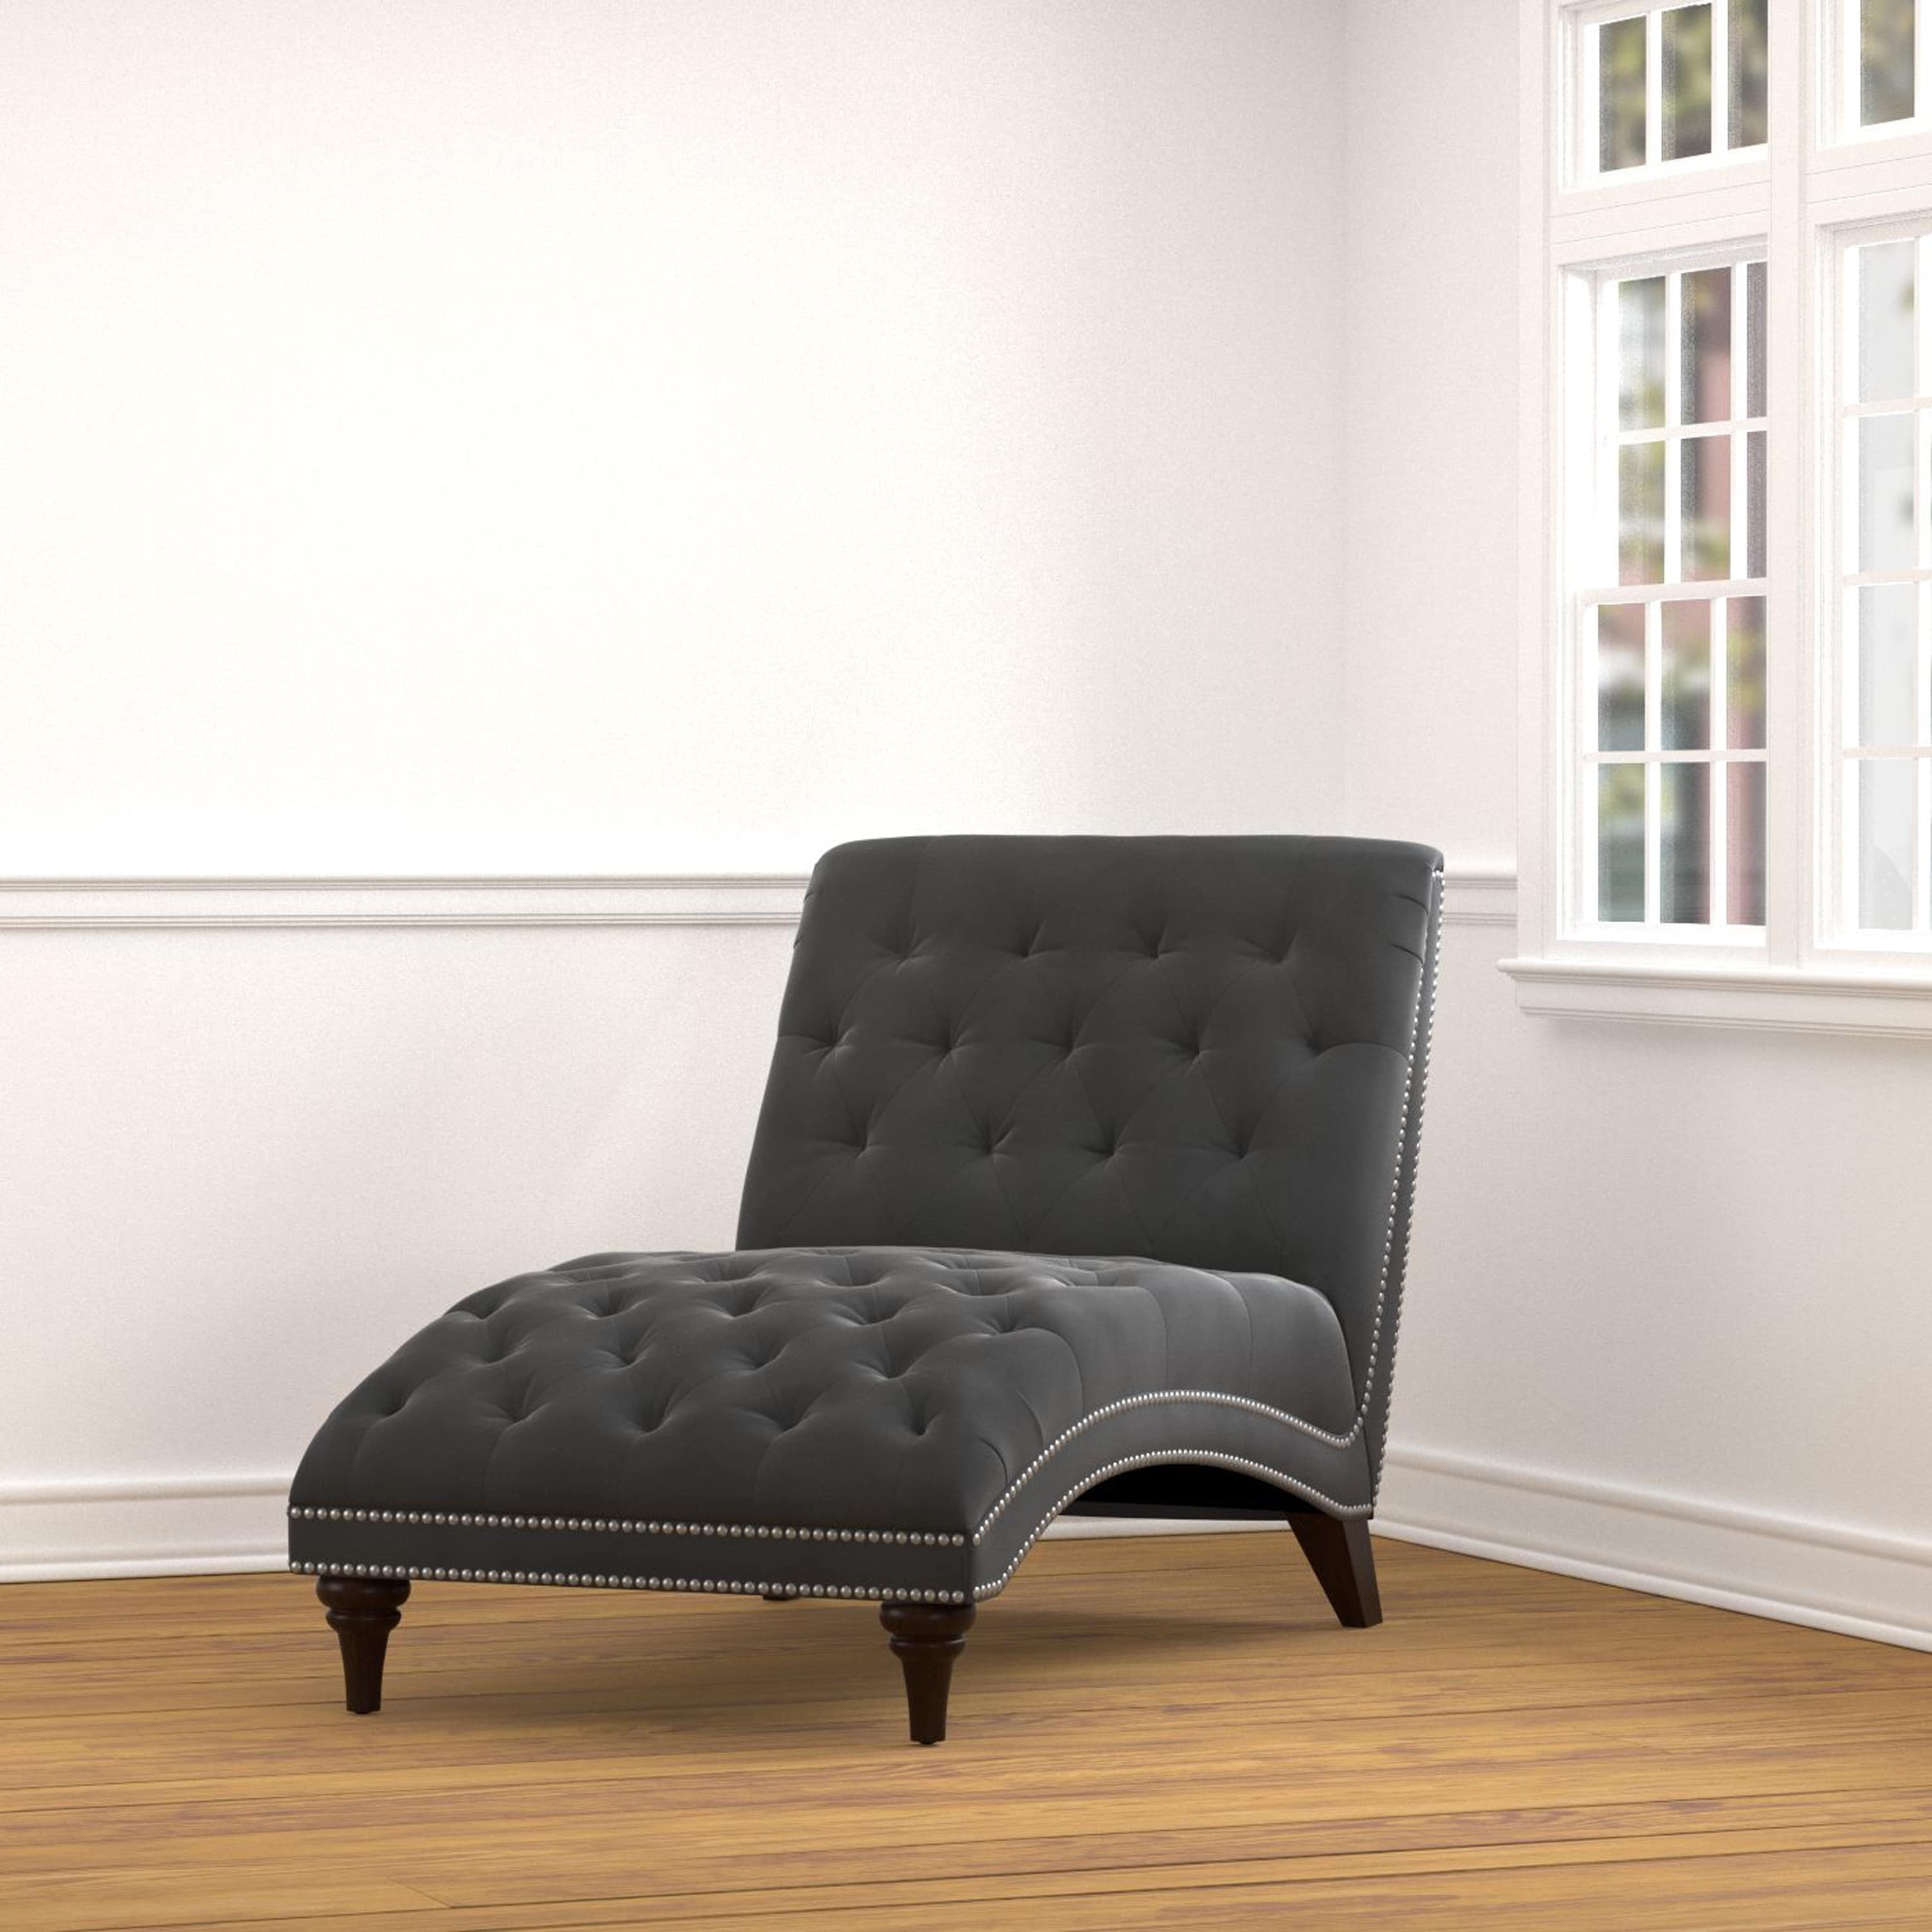 Overstock Chaises With Regard To Widely Used Handy Living Palermo Grey Velvet Snuggler Chaise – Free Shipping (View 3 of 15)